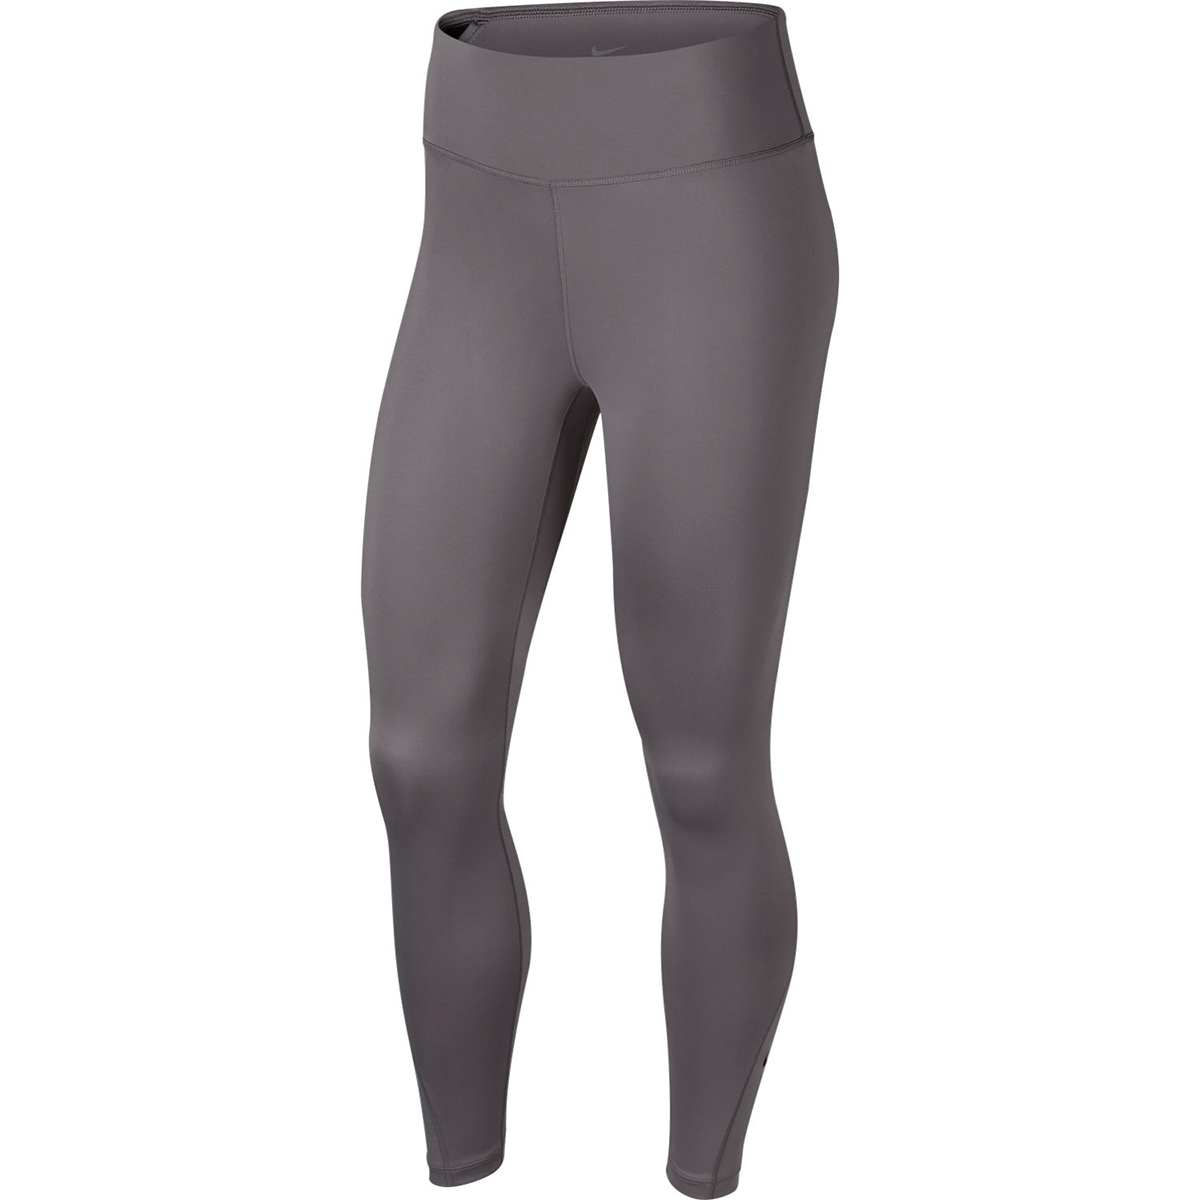 Nike Women's All In 7/8 Tights - Black, S